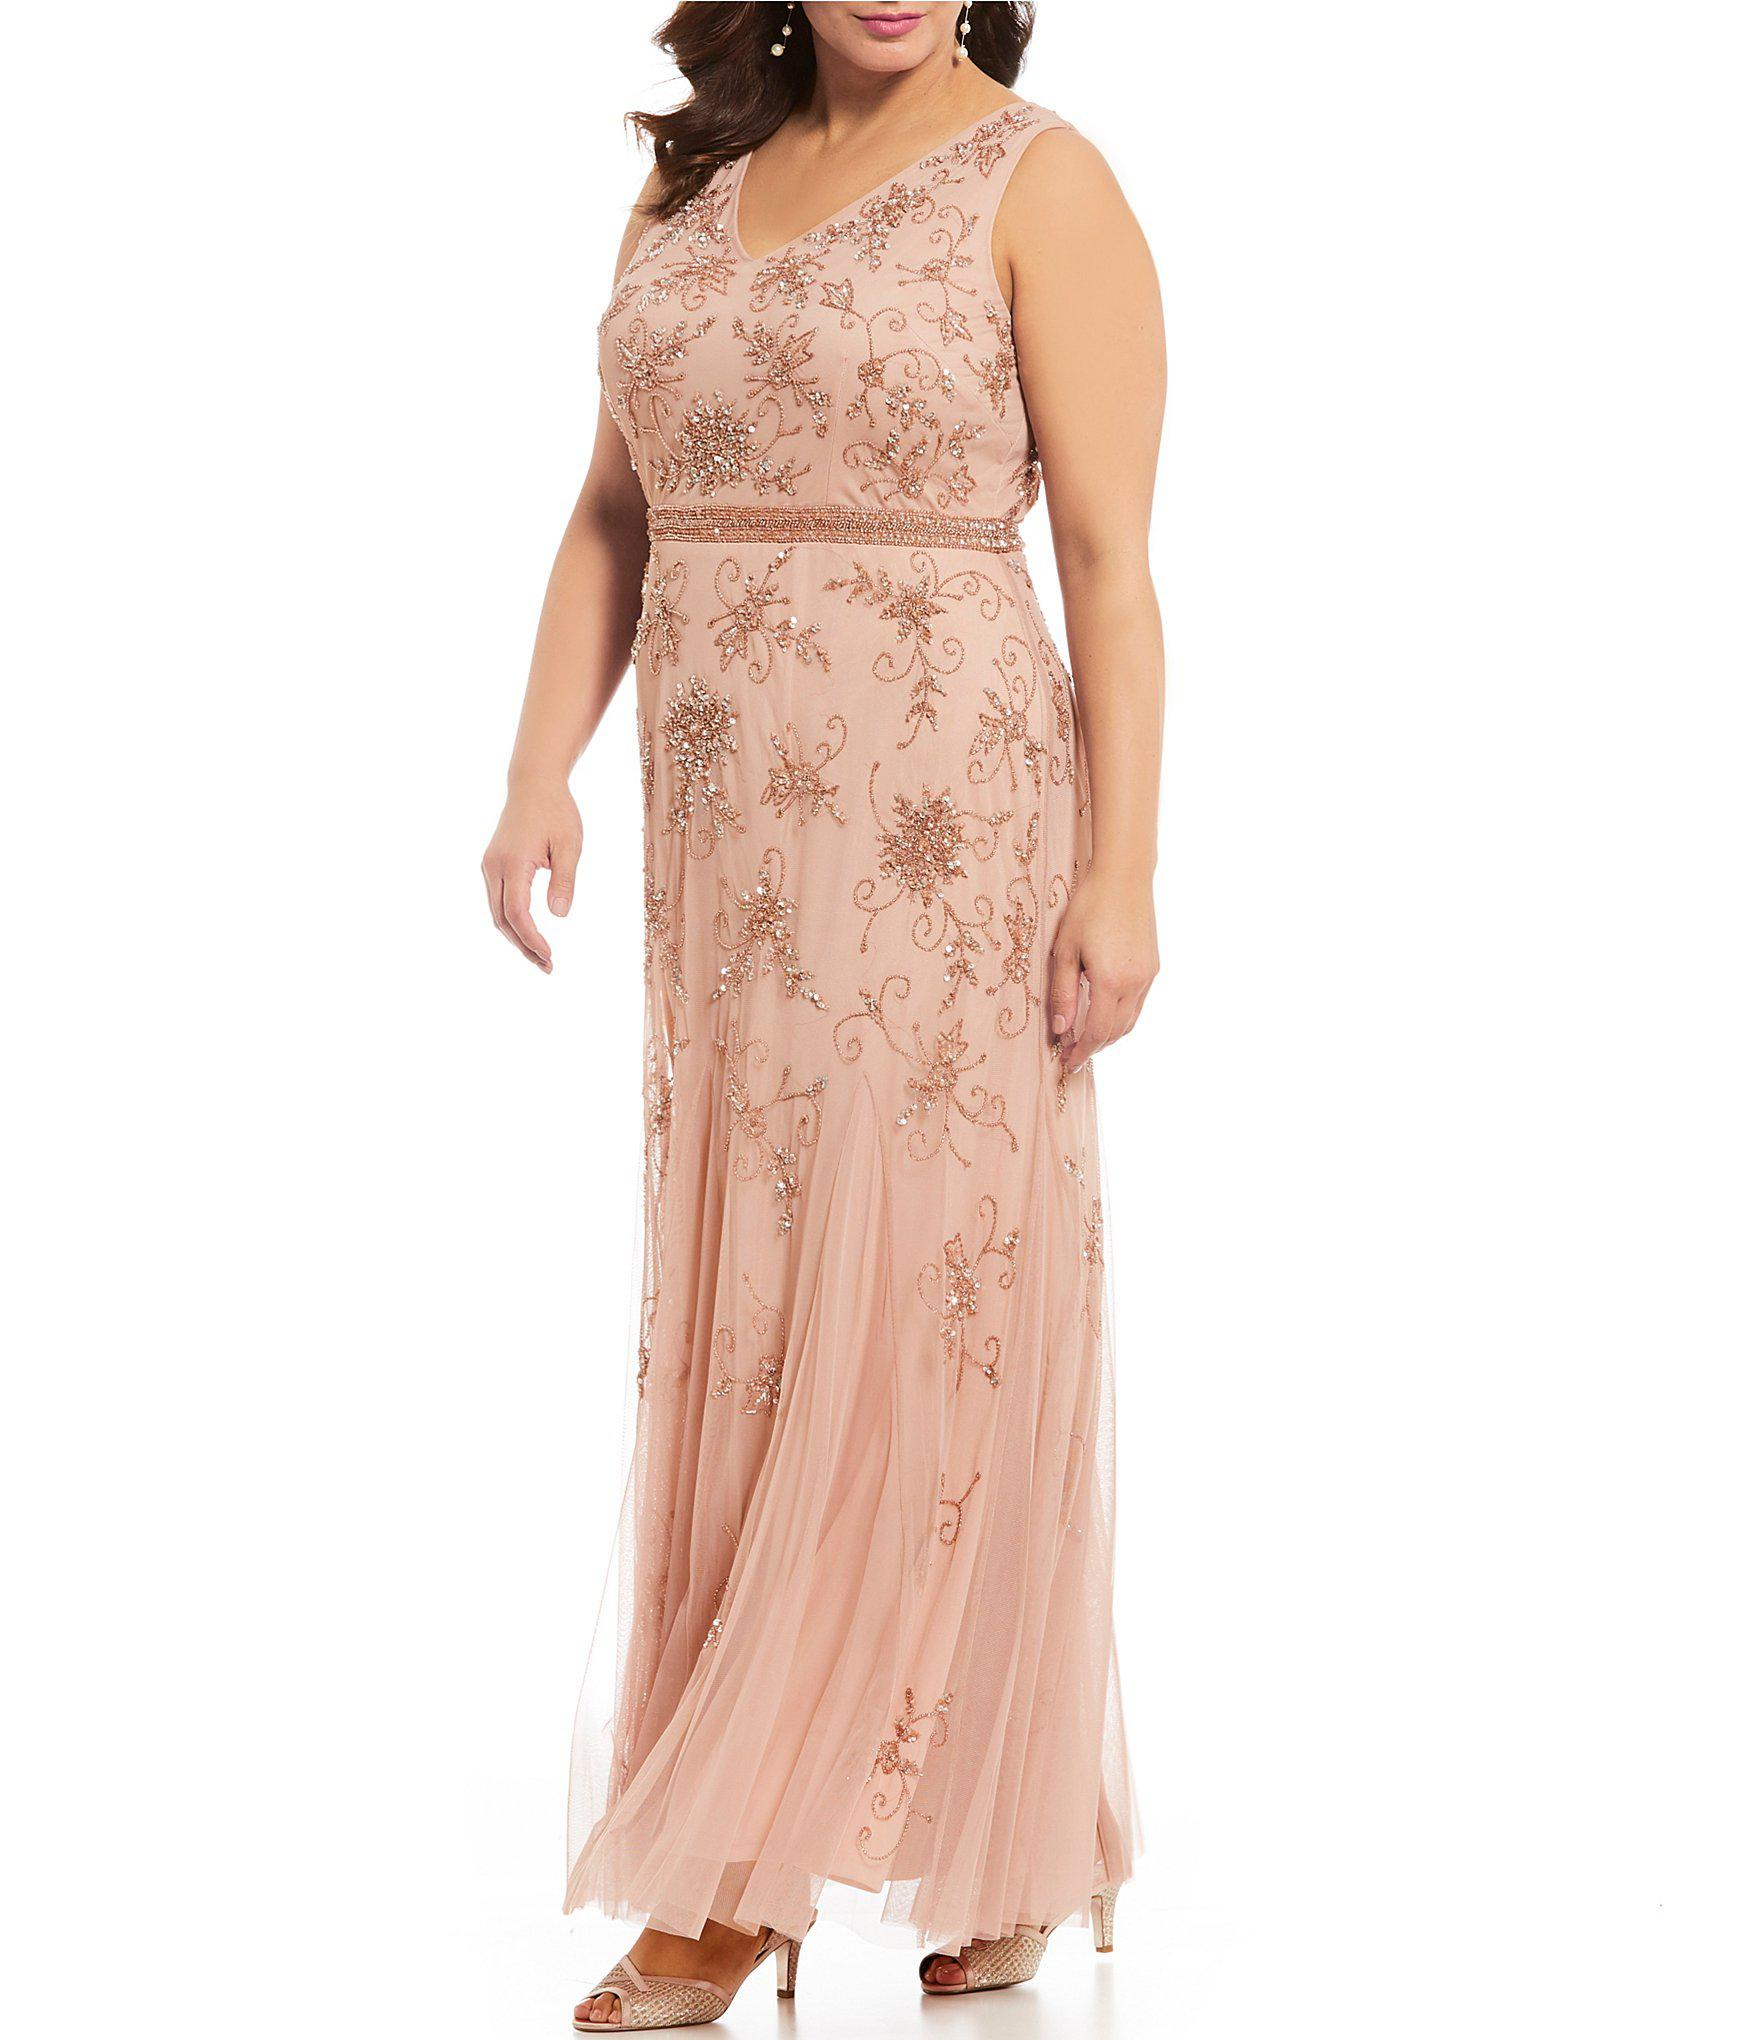 78dfdb0c96134 Lyst - Adrianna Papell Plus Size Long Beaded Cape Dress in Pink